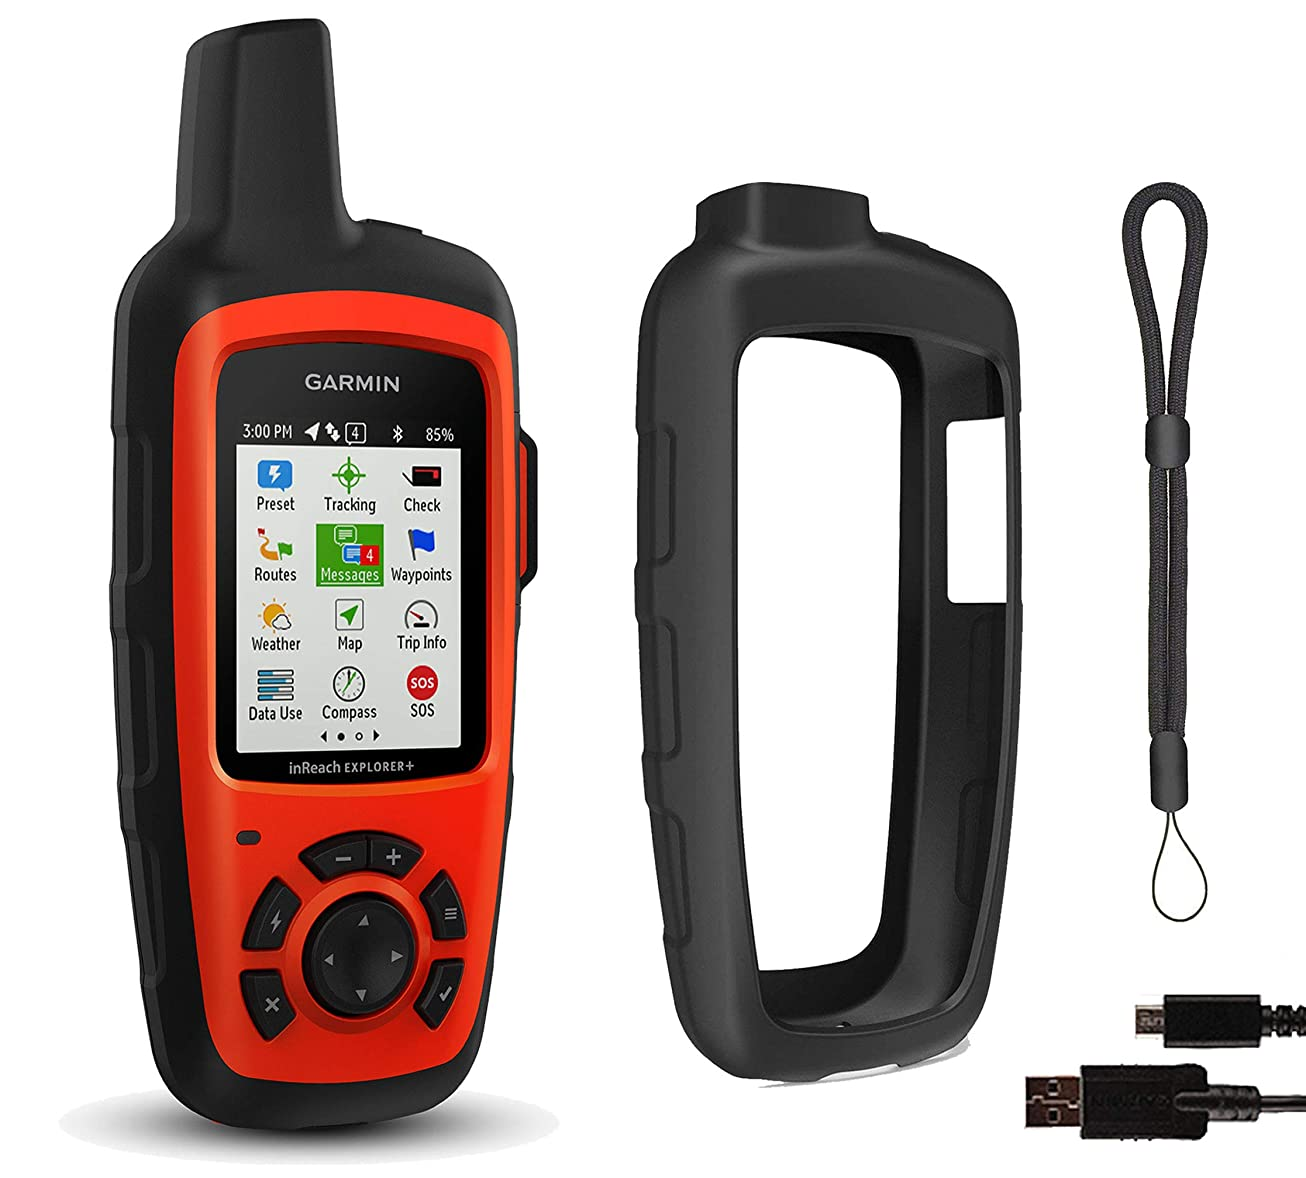 Garmin inReach Explorer+ Hiking GPS Bundle | with PlayBetter Protective Silicone Case & GPS Tether Lanyard | Belt Clip, Carabiner Clip | GEOS, Weather, Messaging esckthpkmrte1